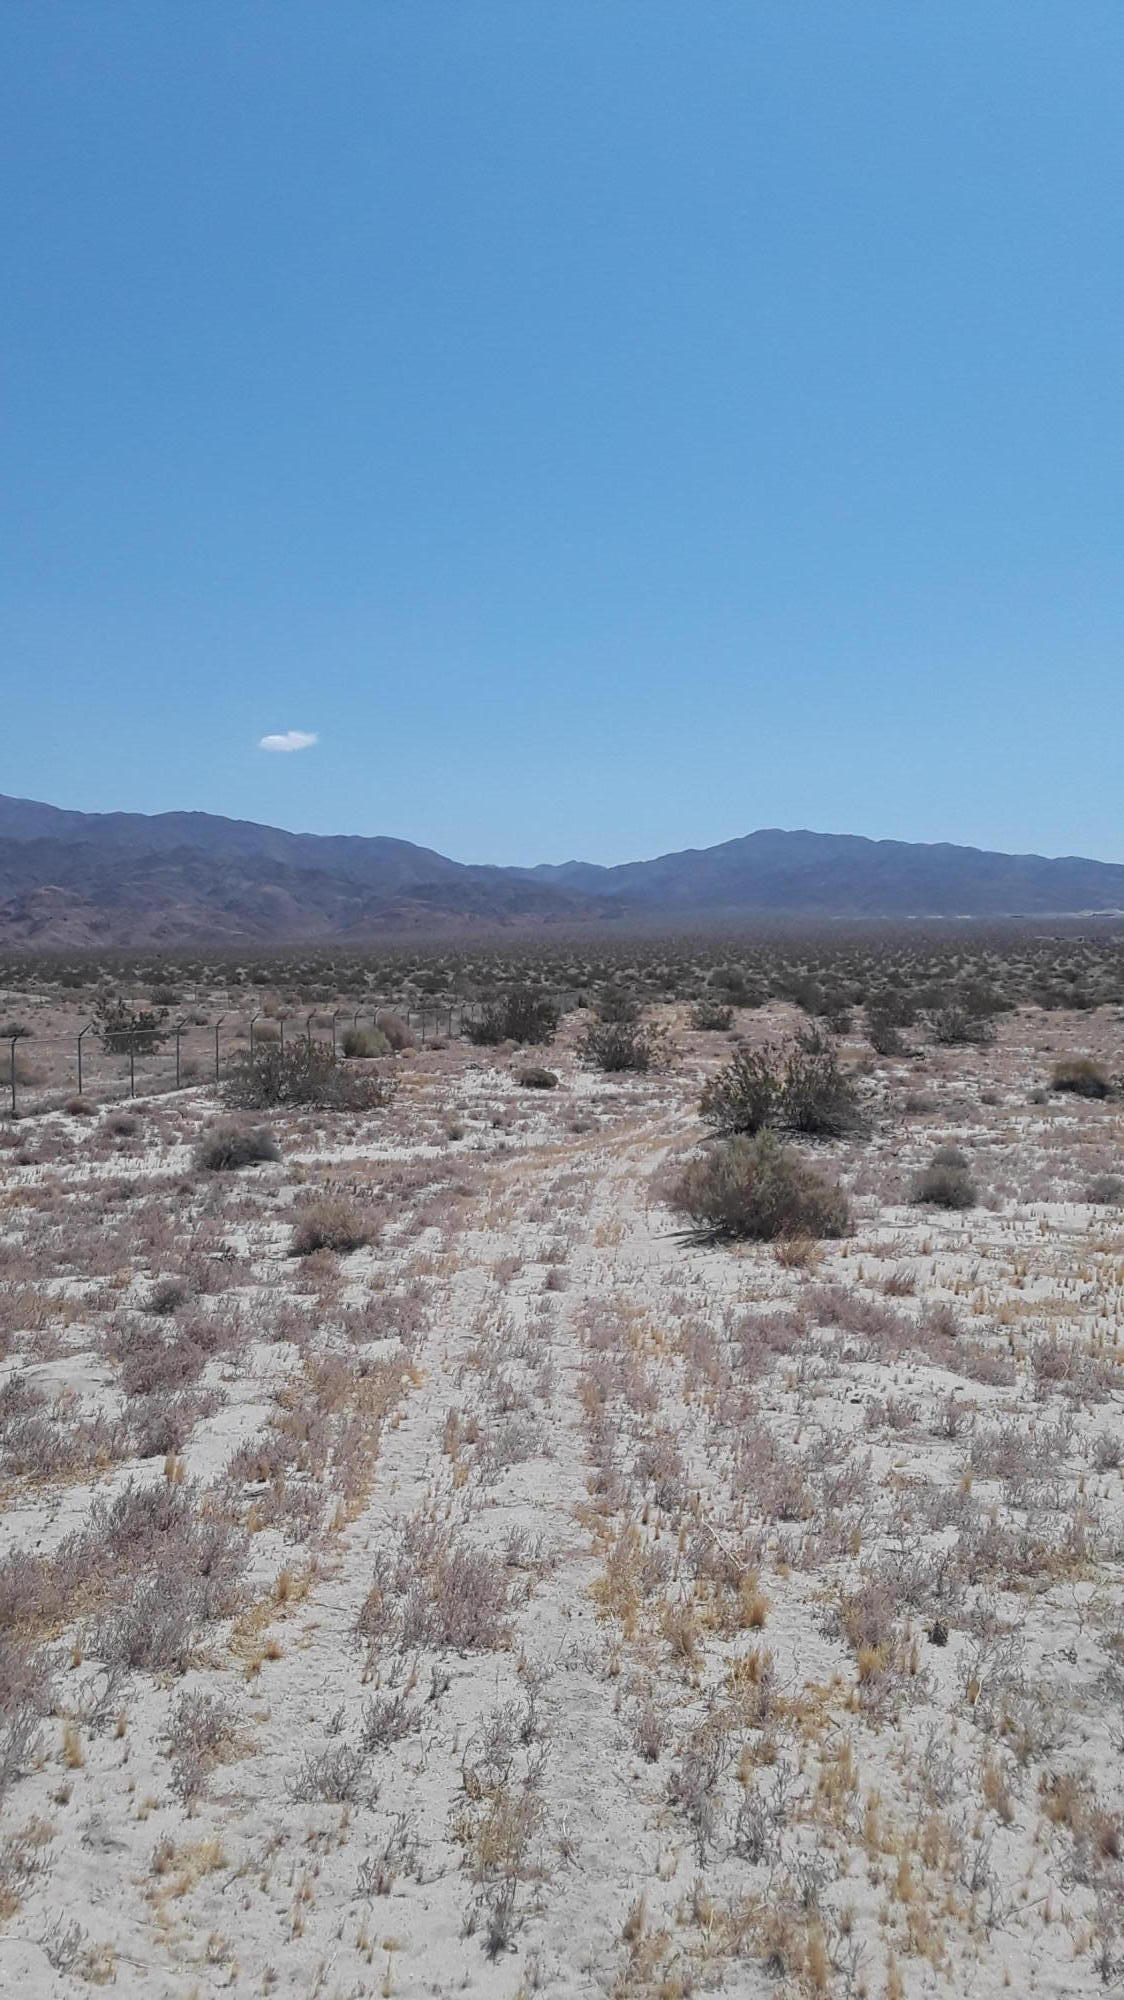 Photo of # 19 Five Acres Off Dillon Lot 19, Indio, CA 92203